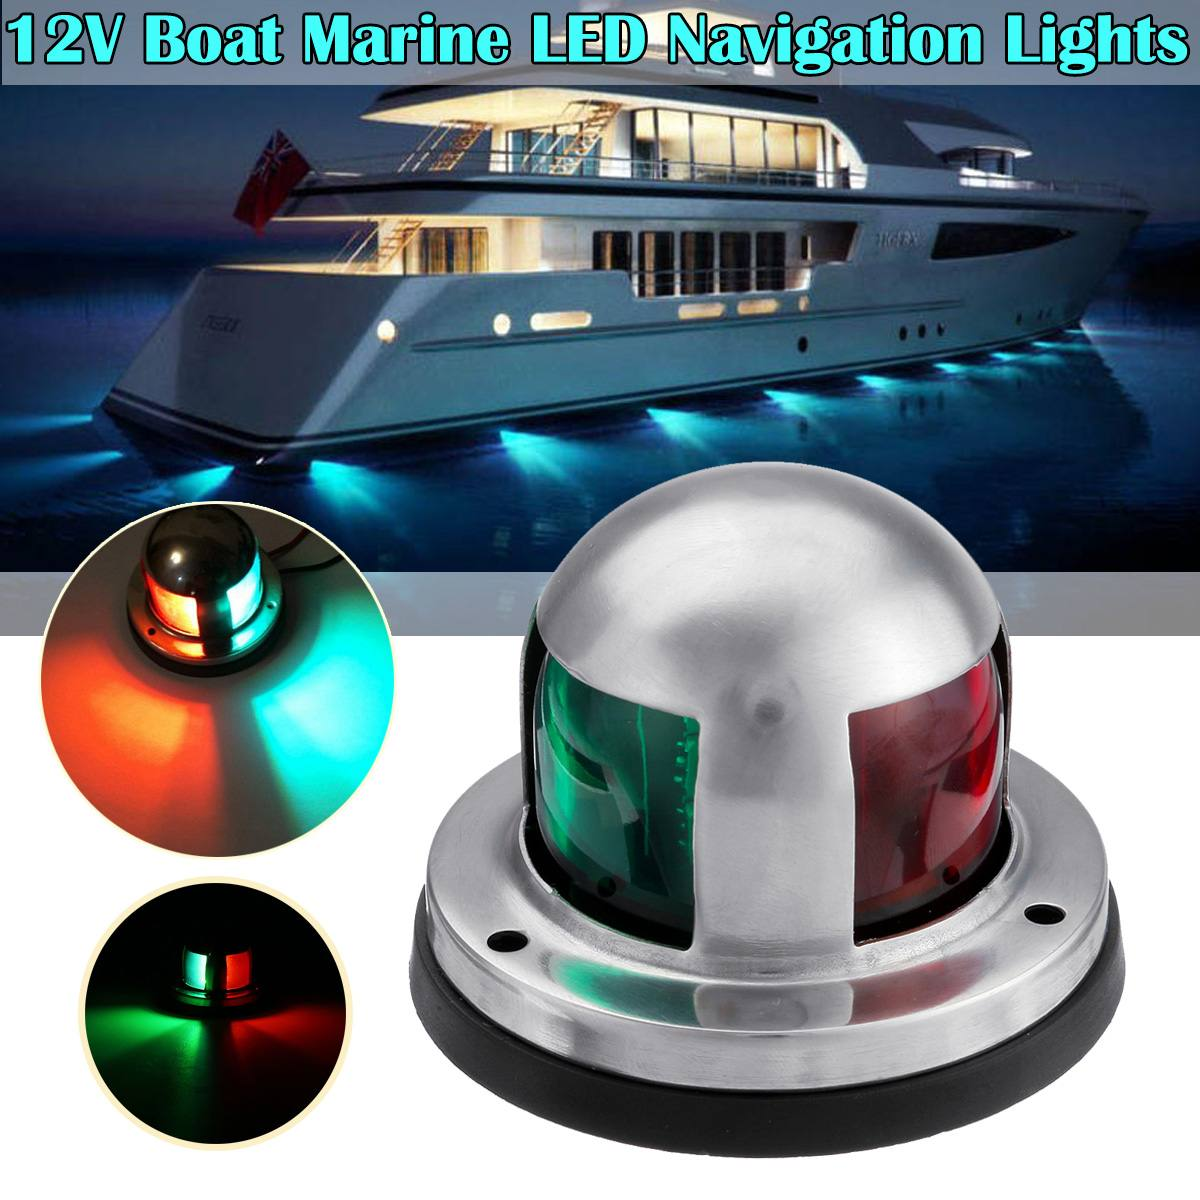 Boat Light LED 12V Stainless Steel Navigation Light Red Green Sailing Signal Light For Marine Boat Yacht Accessories